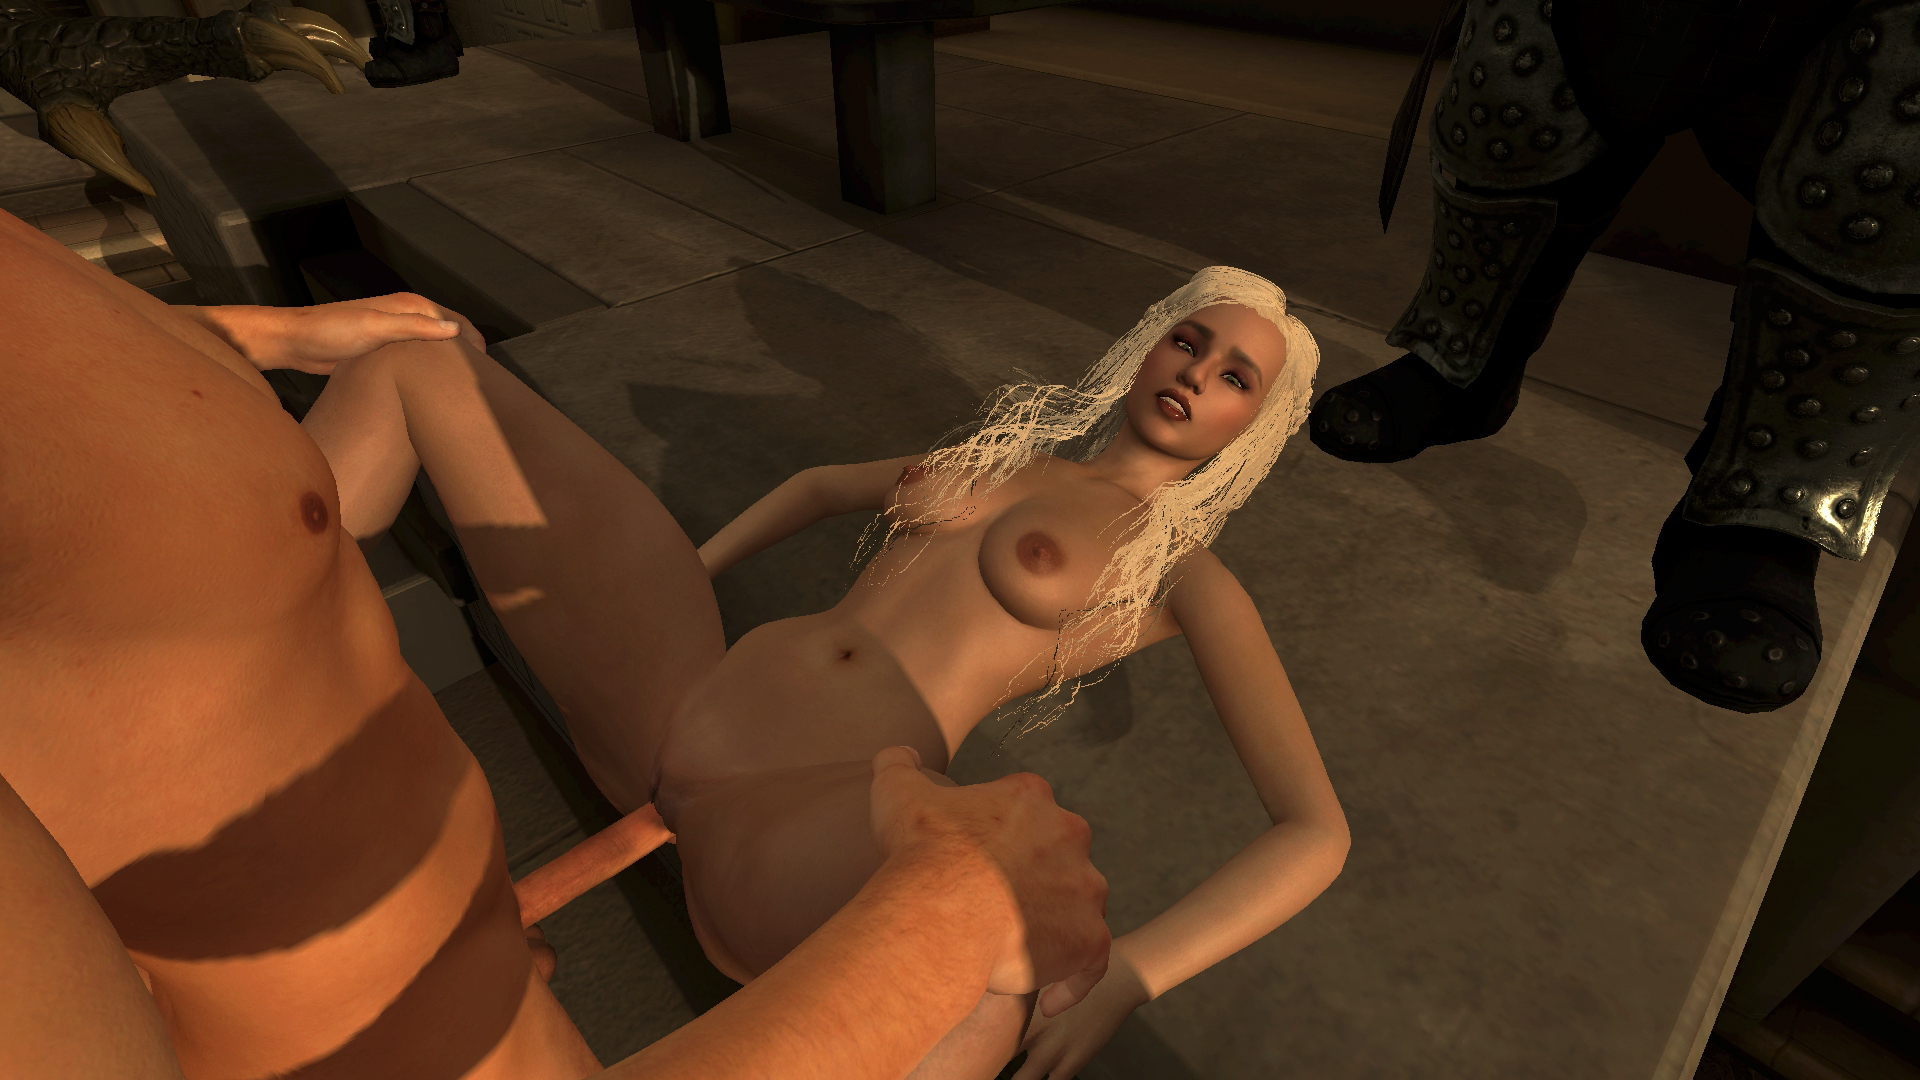 Virtual Porn Games - SinVr